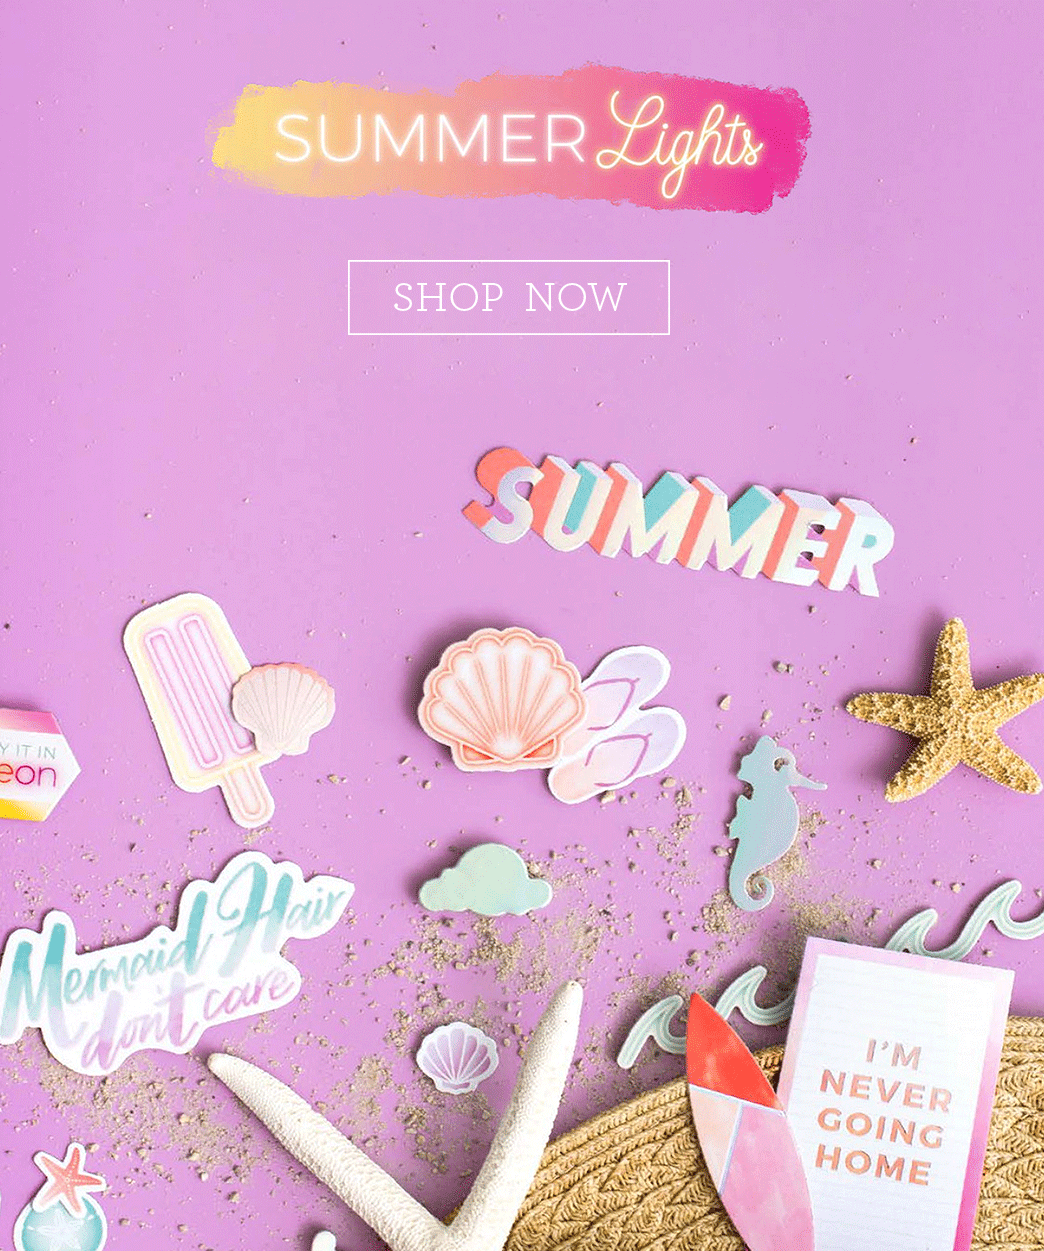 PP-SUMMER-LIGHTS-GRAPHIC-